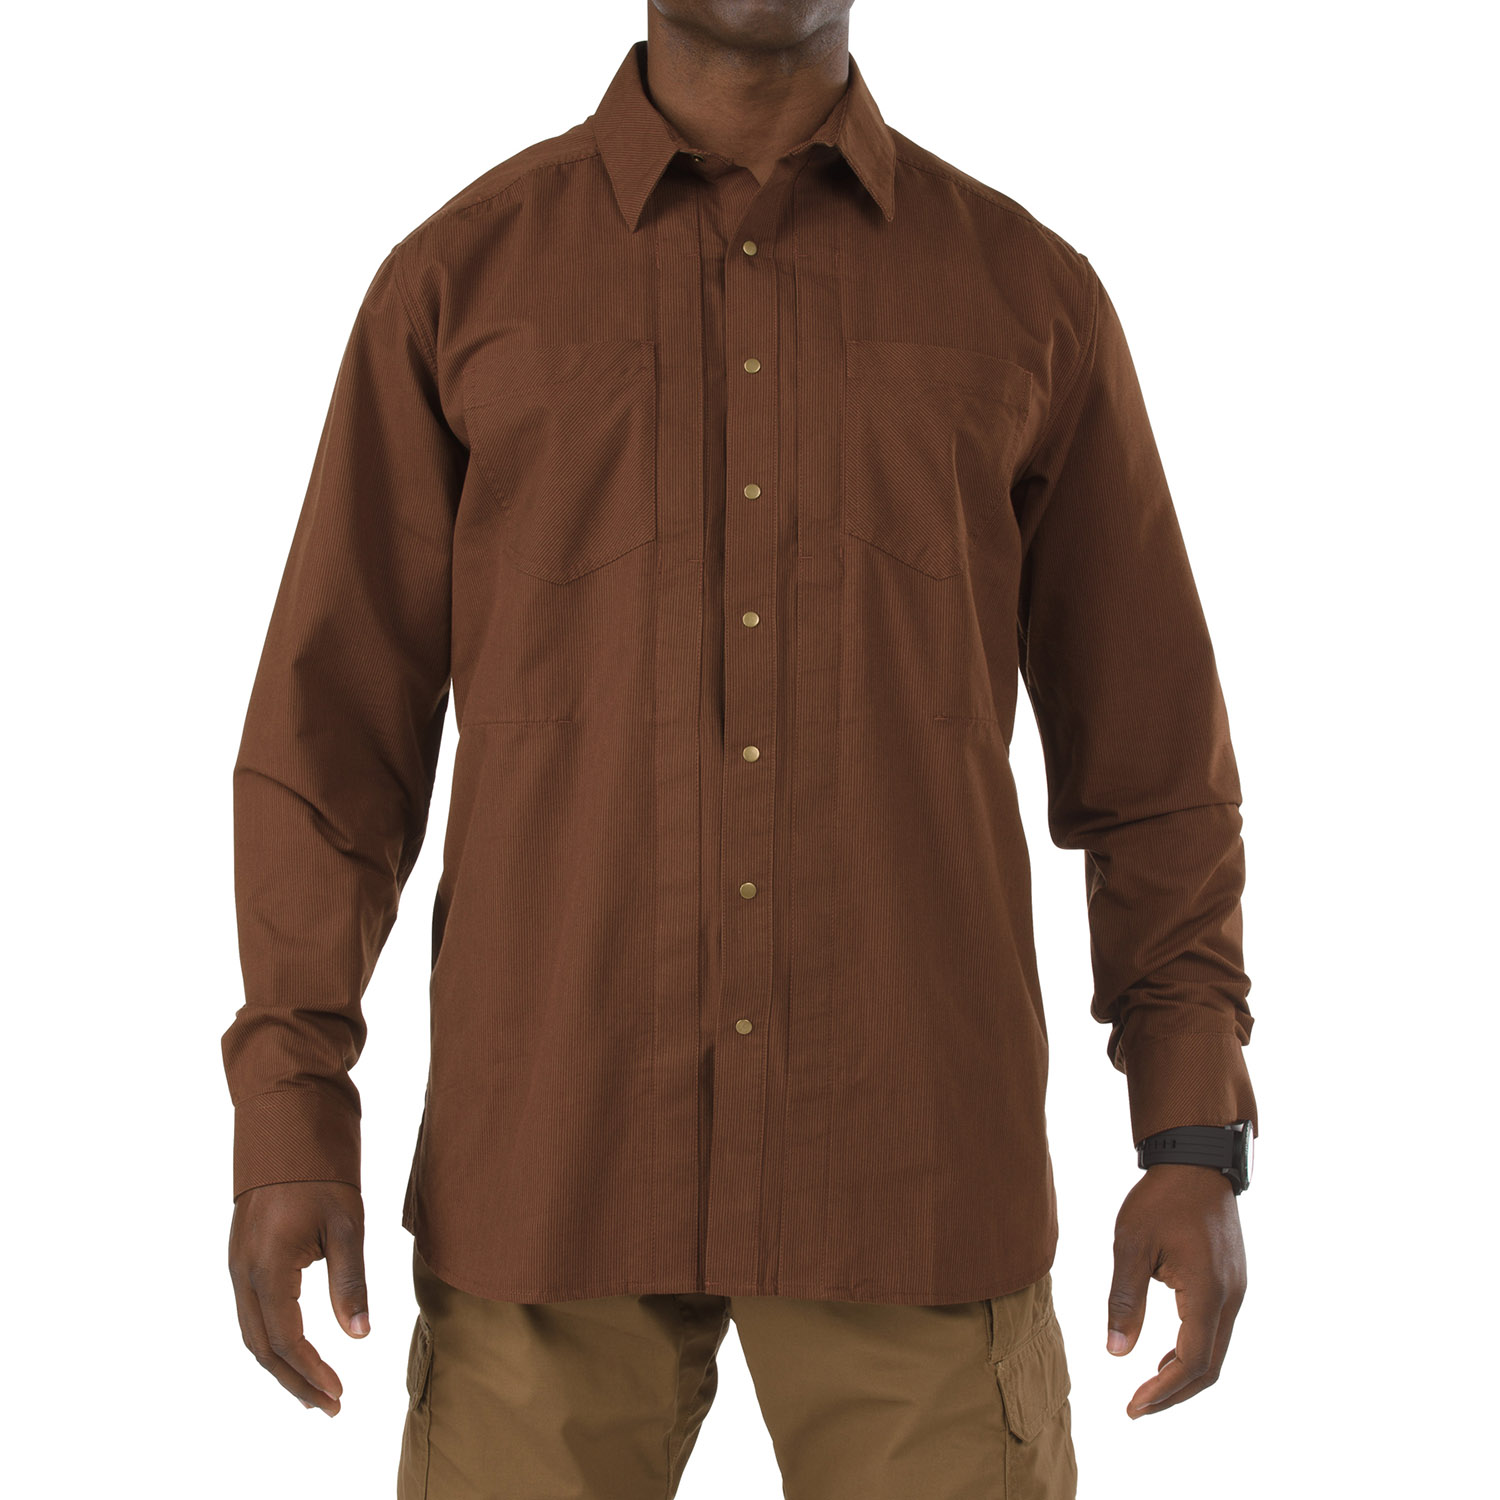 5.11 Tactical Covert Herringbone T-Shirt